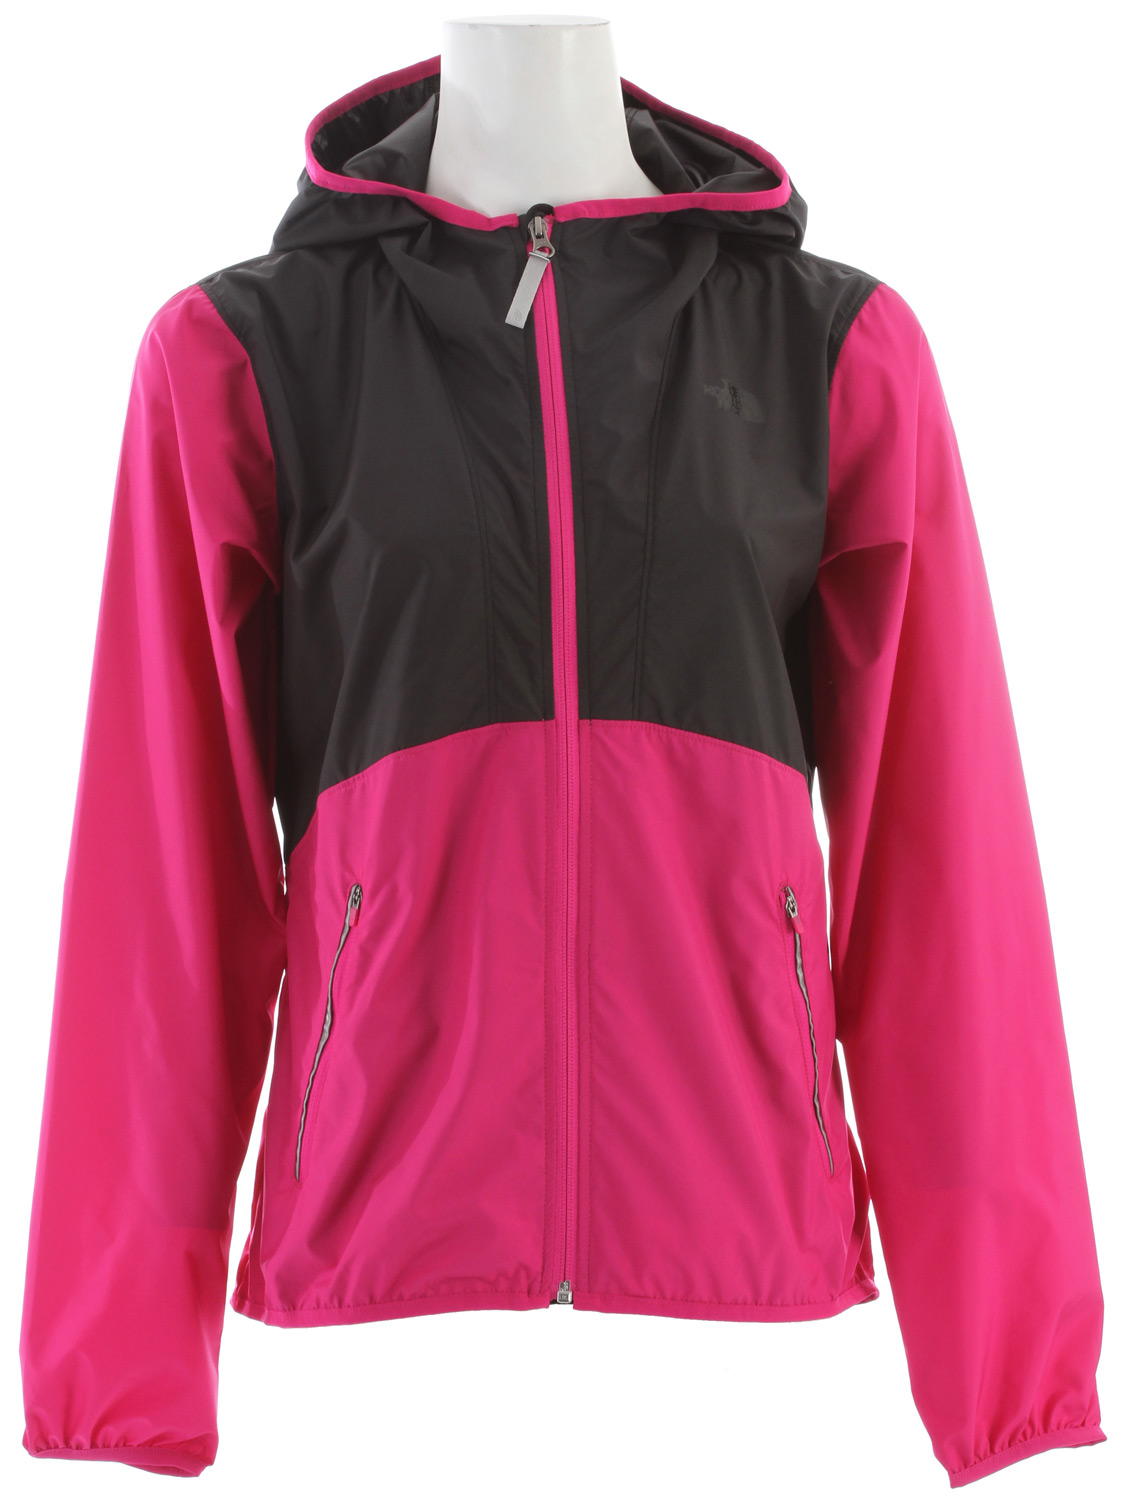 "MTB A lightweight, wind-resistant jacket with bike-friendly features and reflective trim to keep you comfortable and visible during your bike commute. Key Features of The North Face Ripley Jacket: Wind resistant Fixed hood Zip hand pockets Back zip security pocket Elliptical hem Media port Reflective logosand elements avg weight: 240 g (8.47 oz) Center back: 27.75"" fabric: 50D 76 g/m² (2.24 oz/yd²) 100% recycled polyester taffeta with DWR - $68.95"